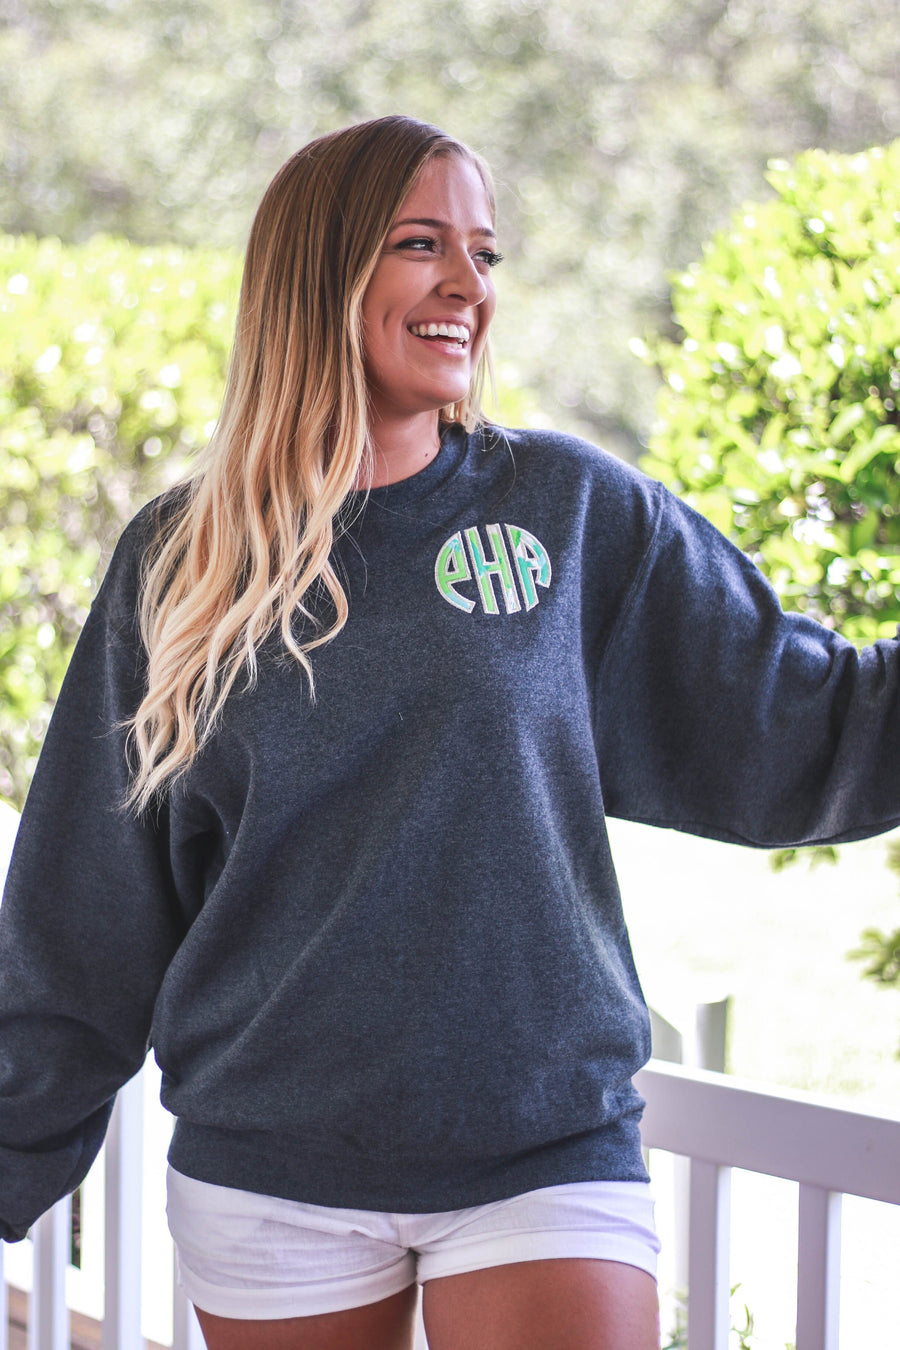 Lilly Crew Neck Monogrammed Sweatshirt, ladies, Sanmar/virg, - Sunny and Southern,